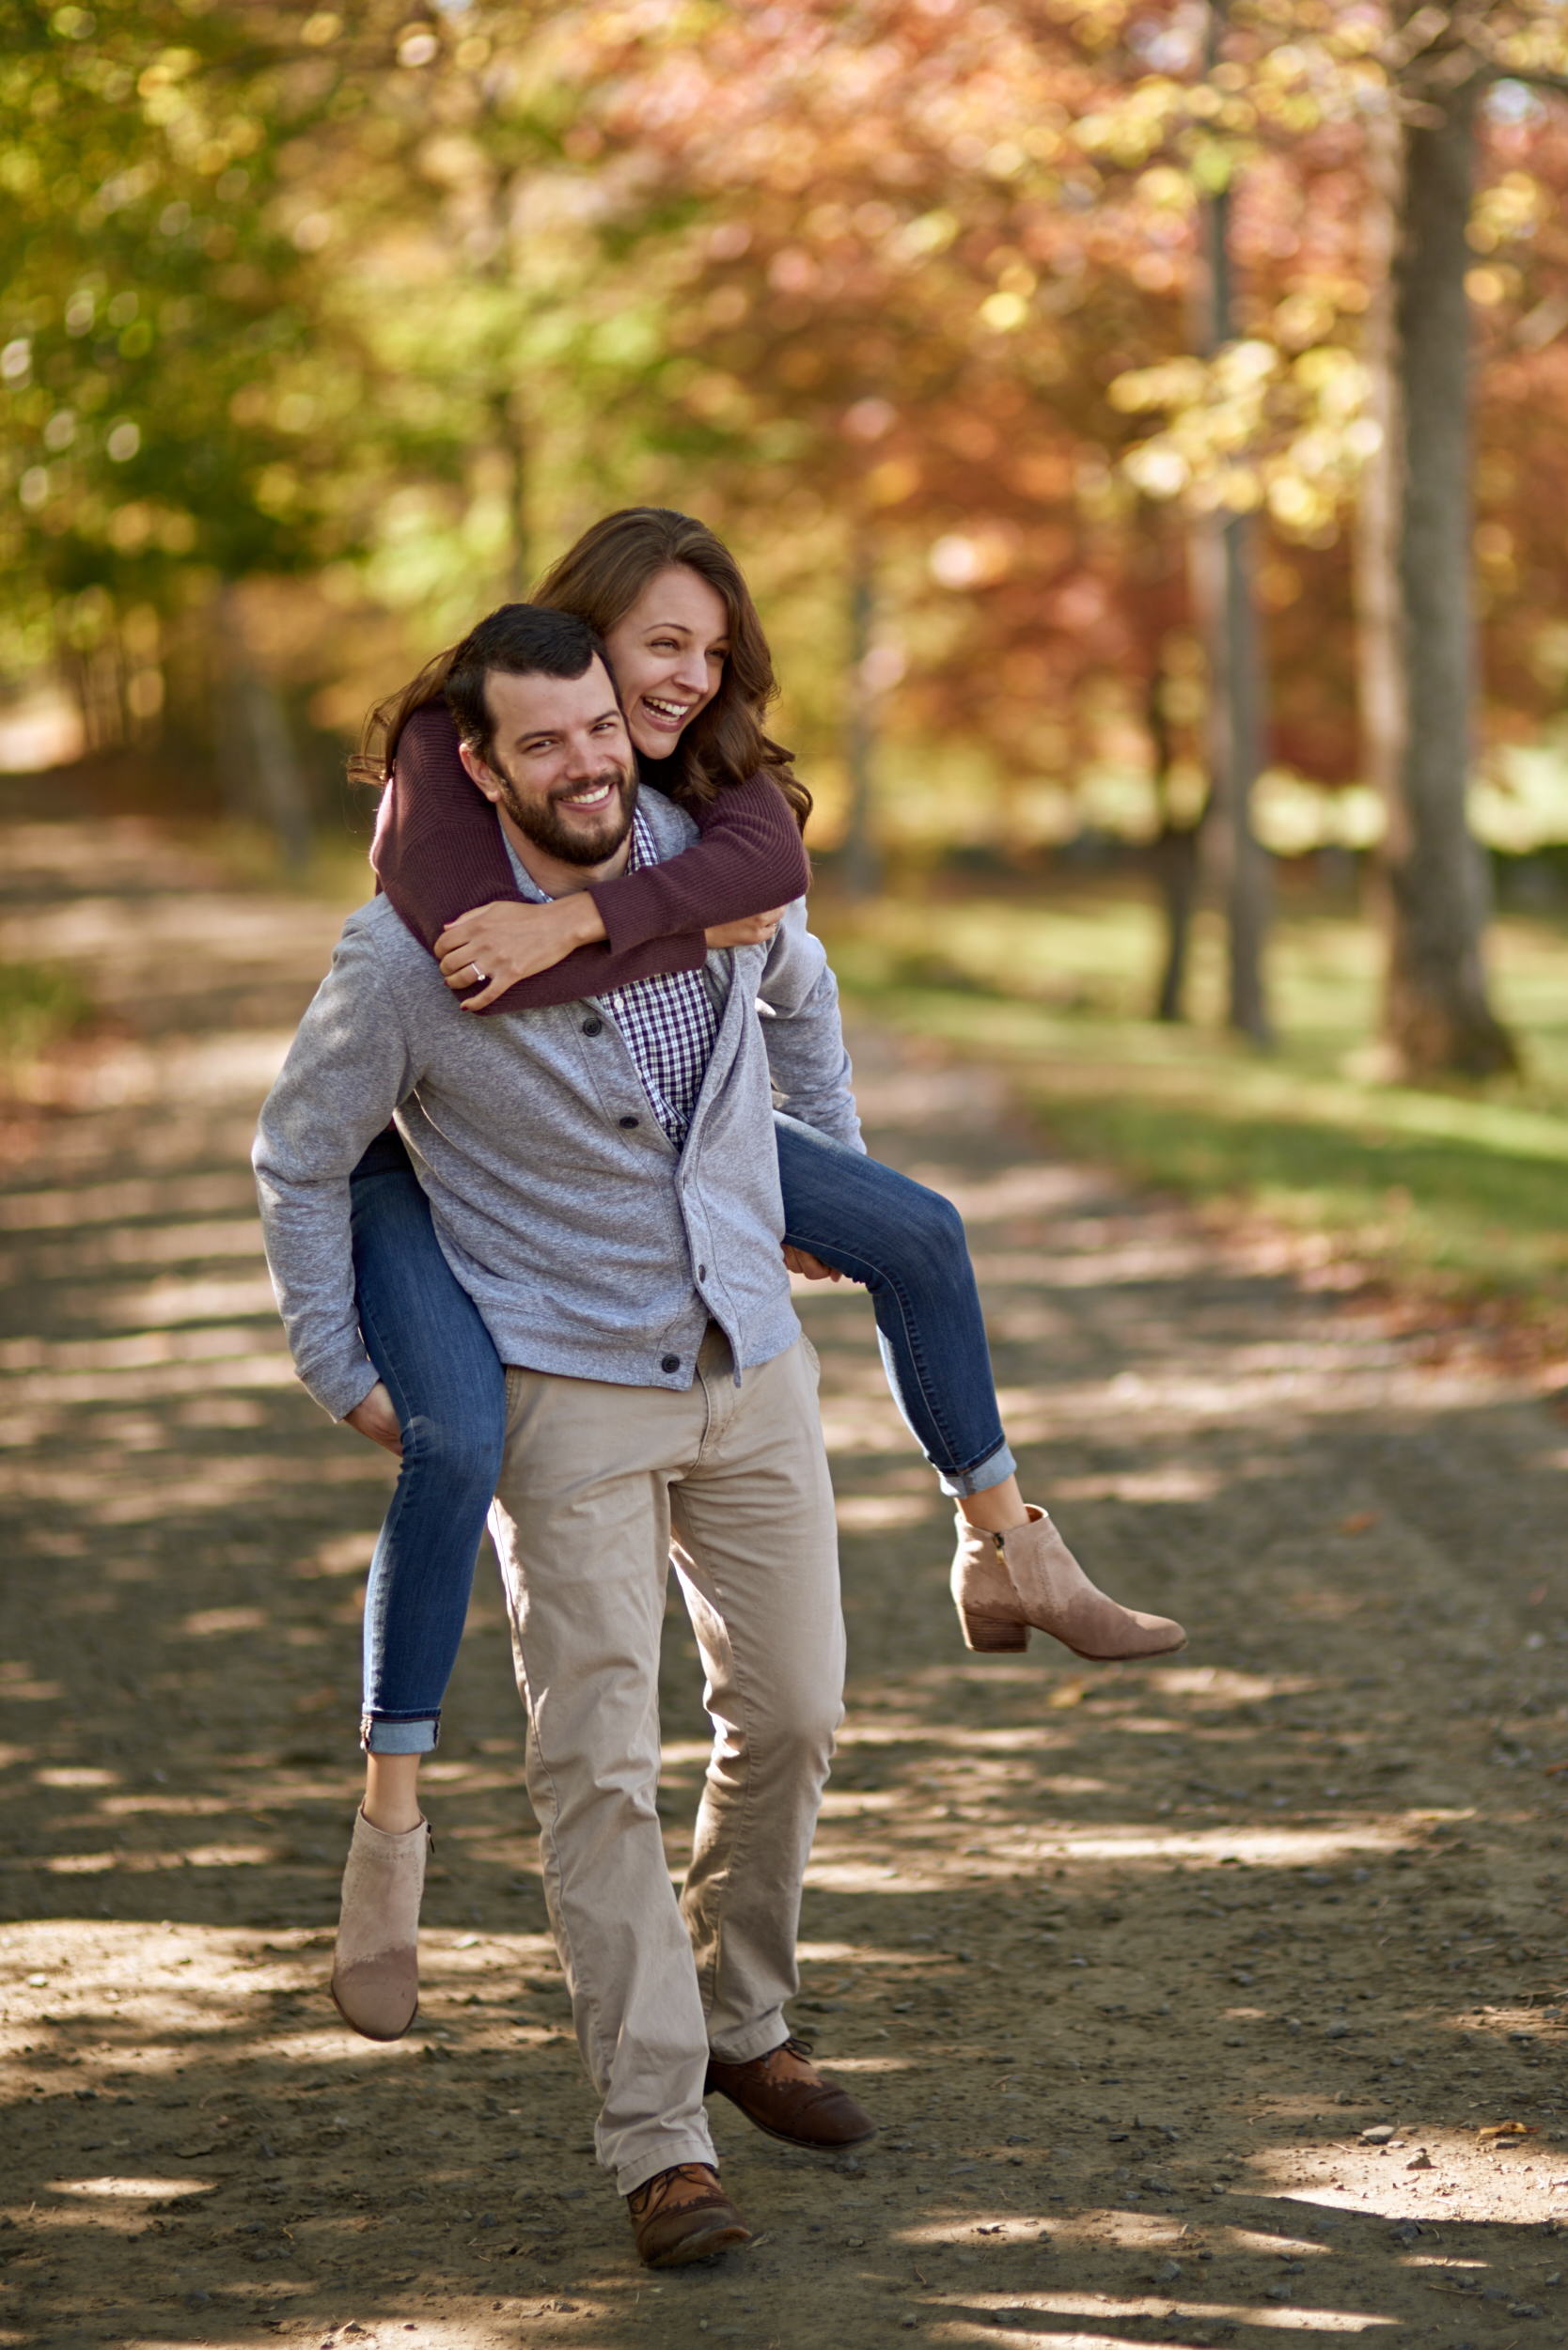 Mariah and Jake's Fall engagement session photos in the Vermont countryside